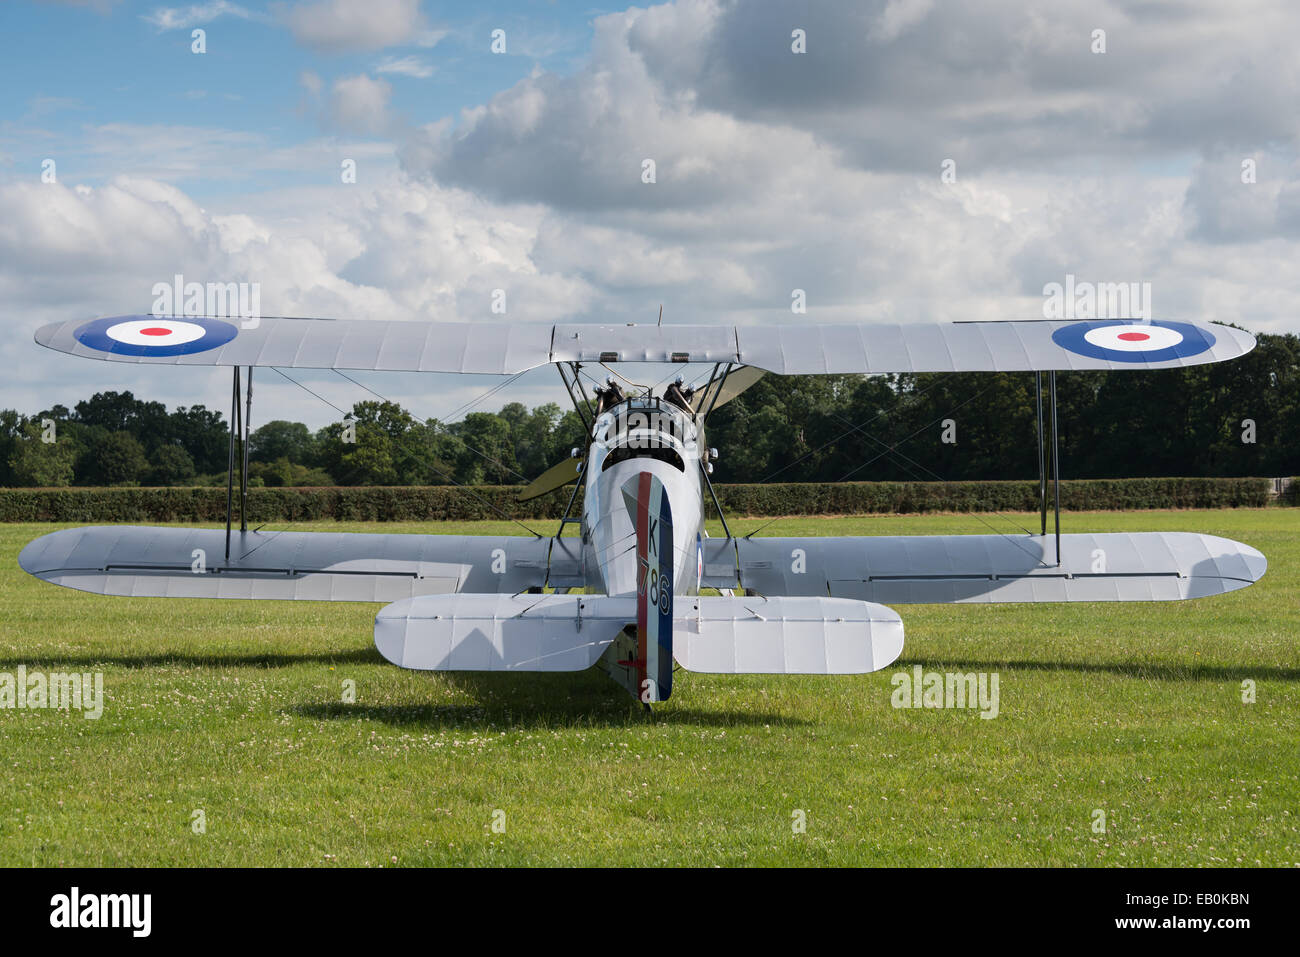 Biggleswade, UK - 29 June 2014: A vintage  Hawker Tomtit bi-plane on display at the Shuttleworth Collection air Stock Photo